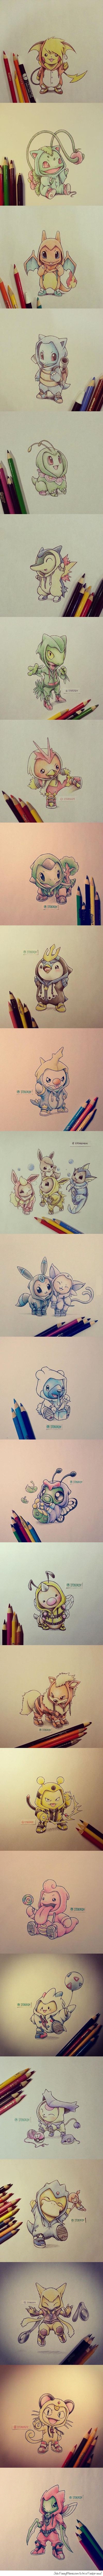 Pokemons In Evolution Costumes  This is soooo fricking adorable <3